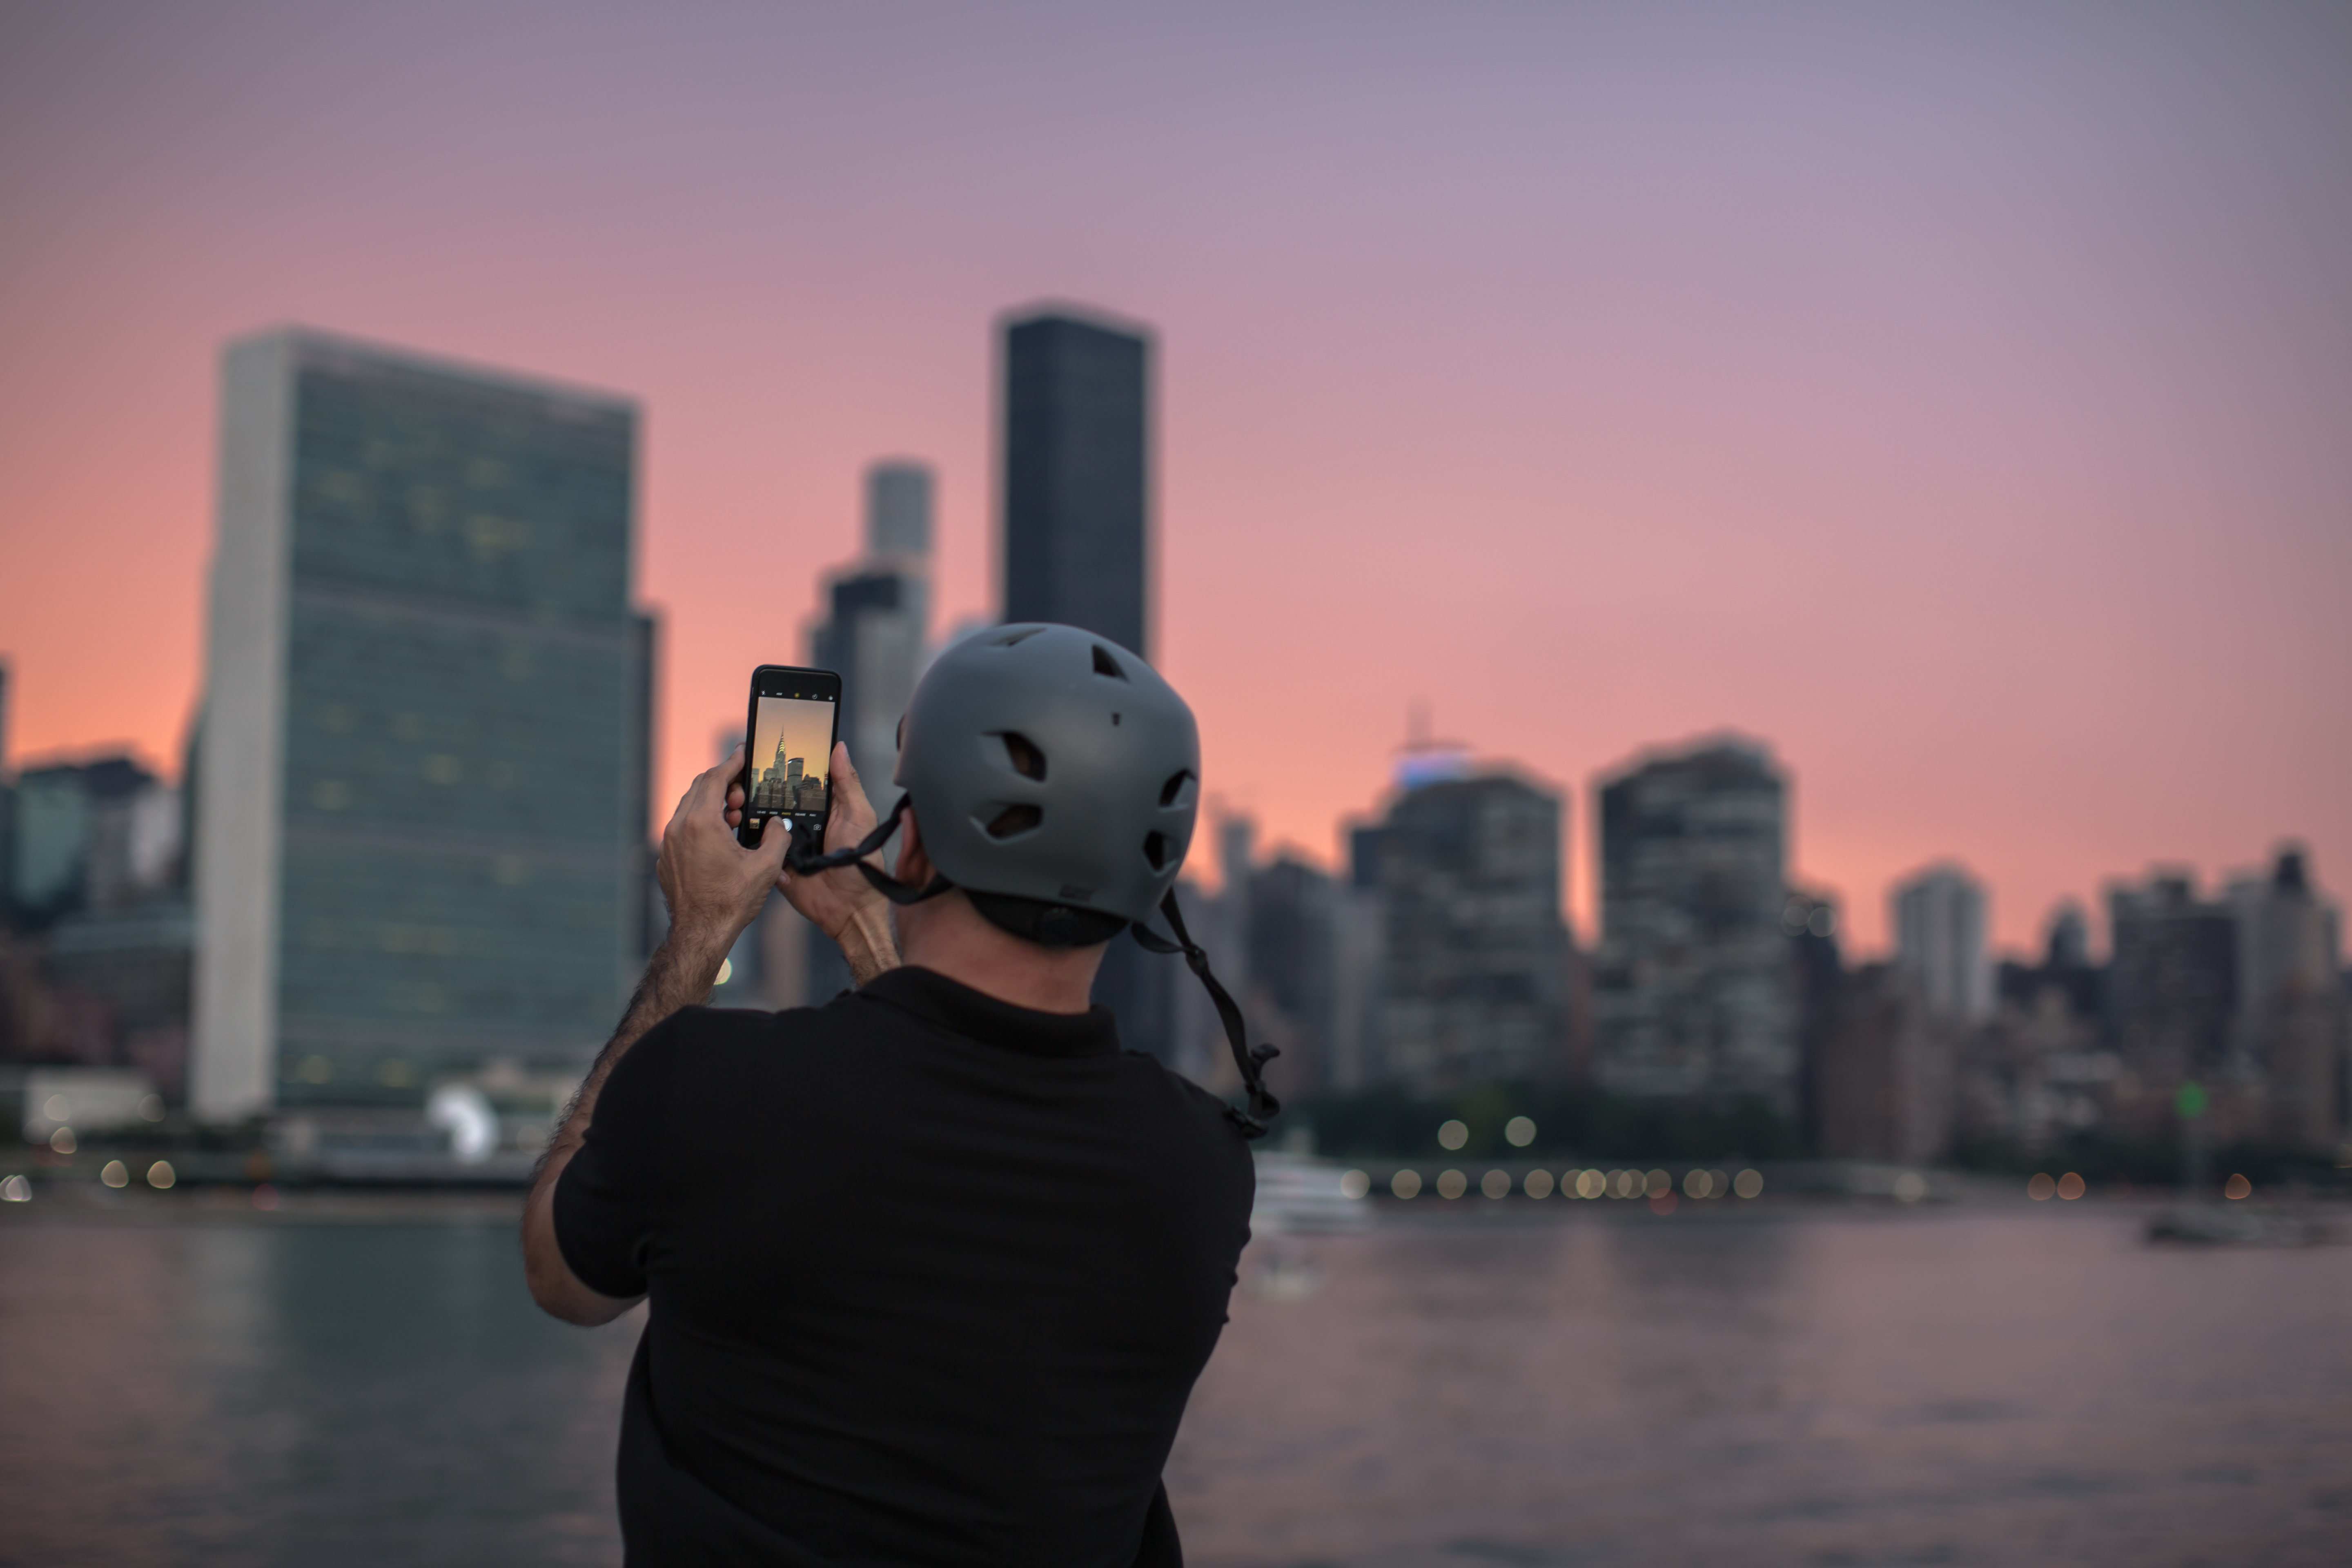 Man taking photos during sunset in the city example image 1